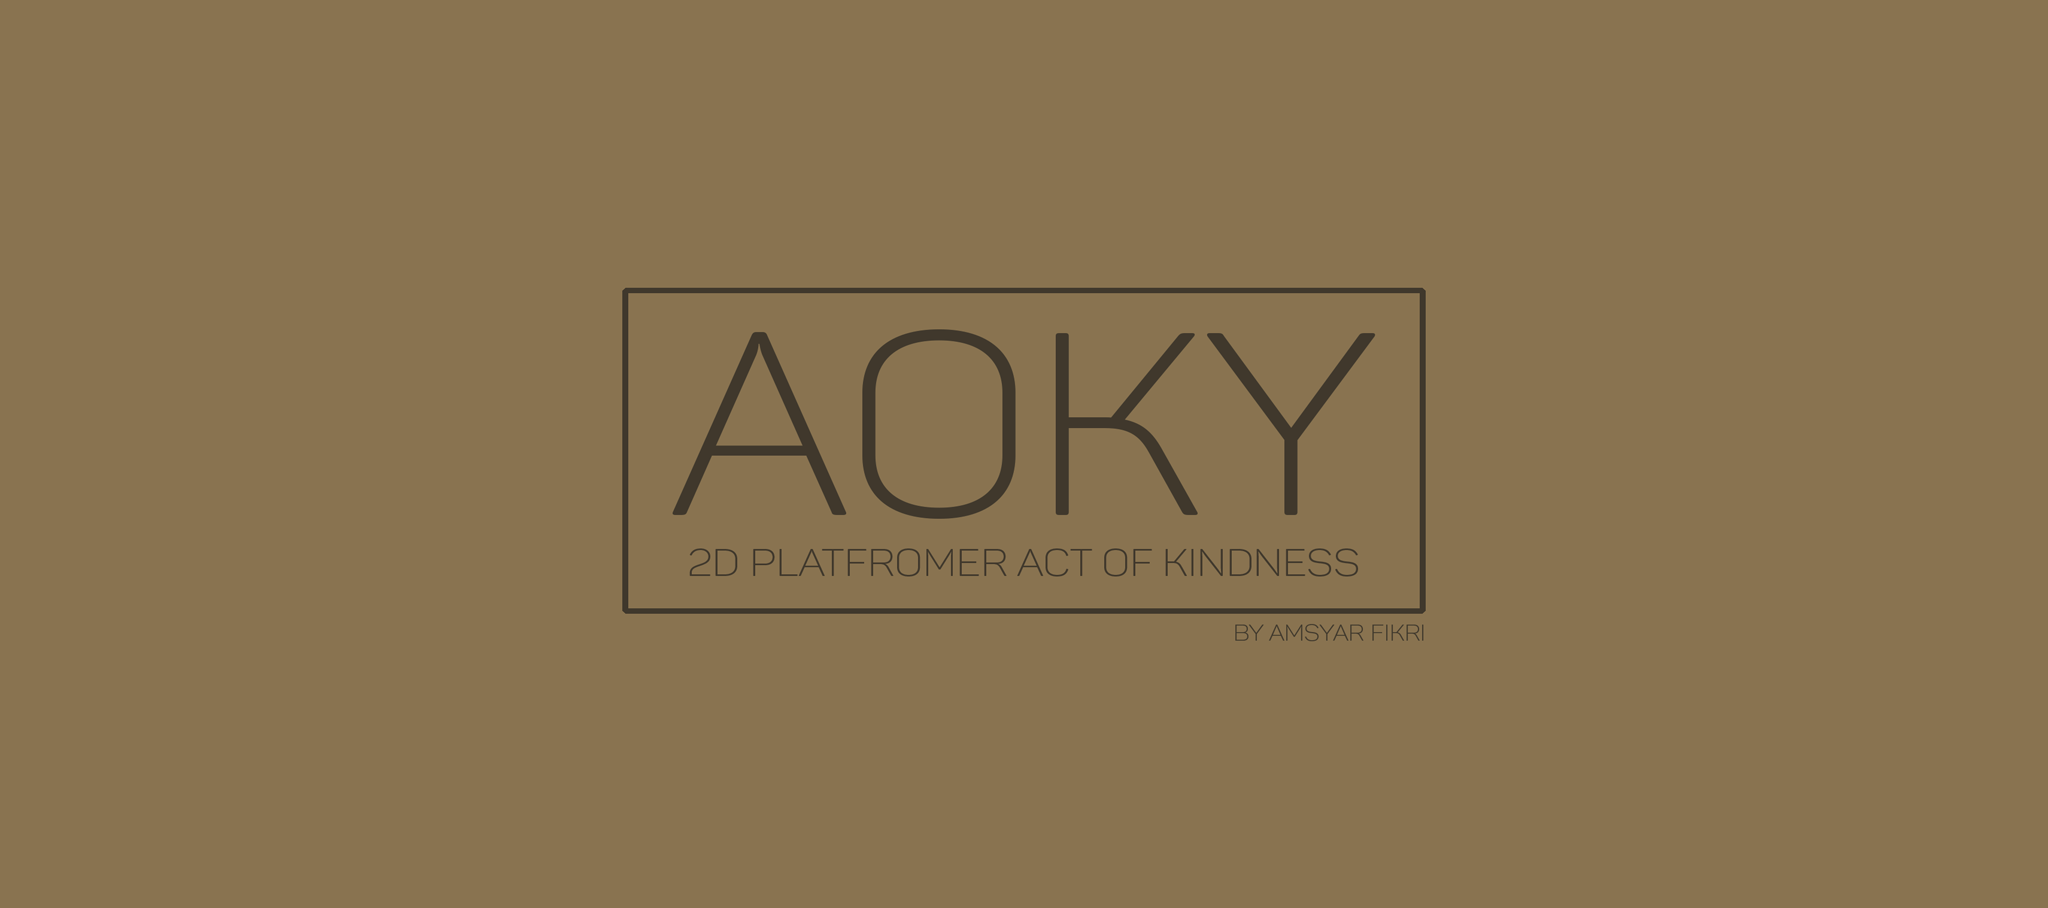 Aoky (2D Platformer Act of Kindness)